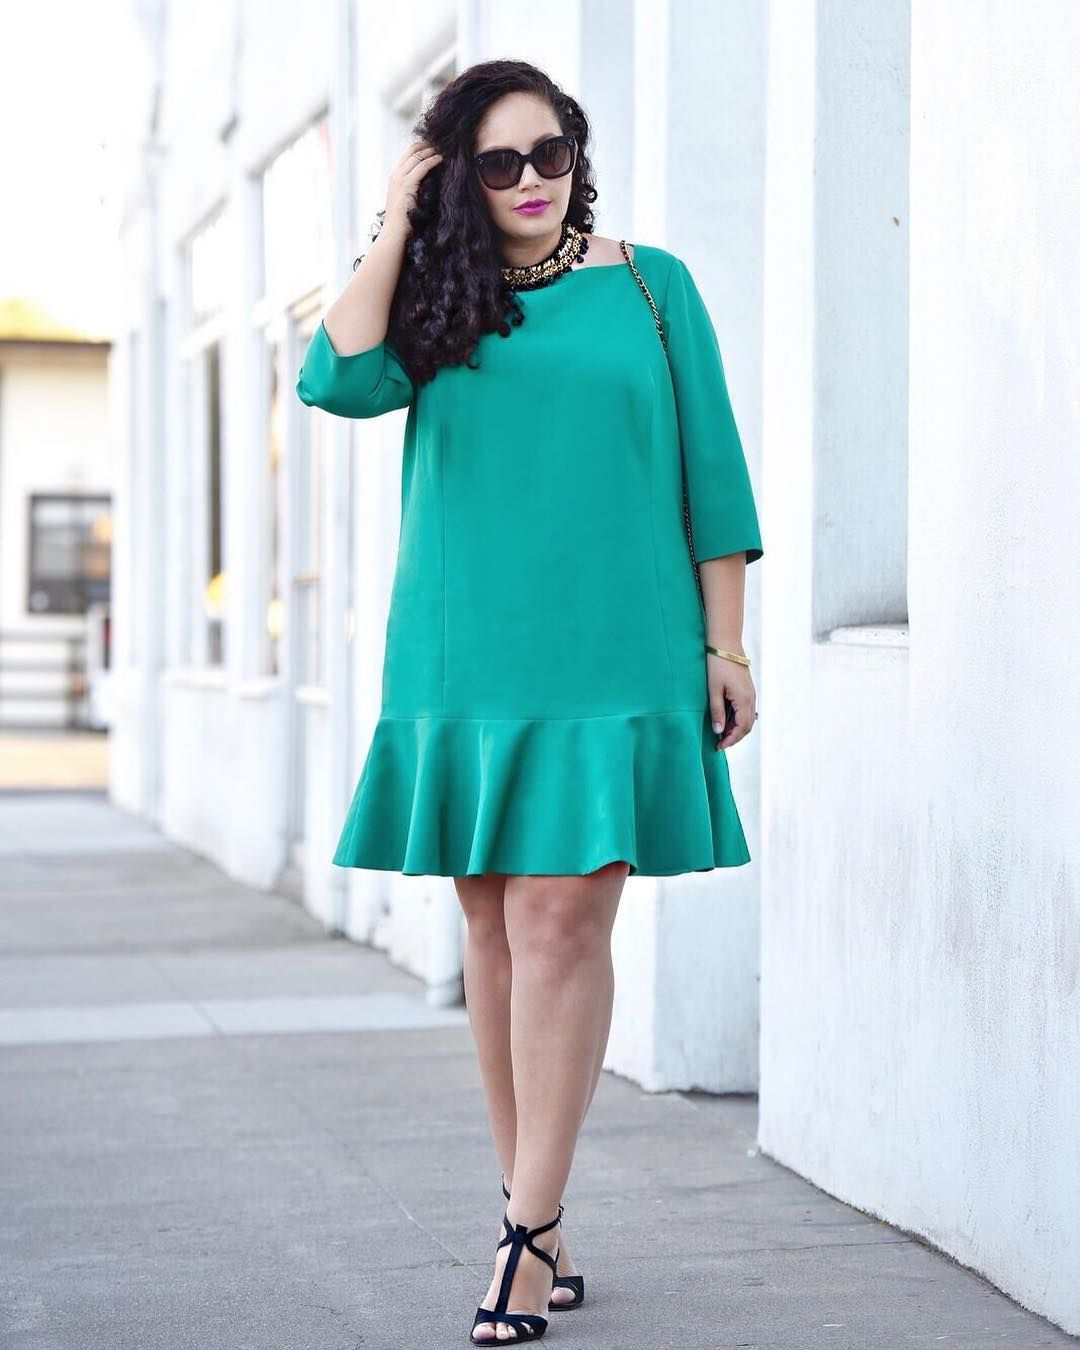 20 Party dresses for ALL SIZES the winners of the $500 shopping ...